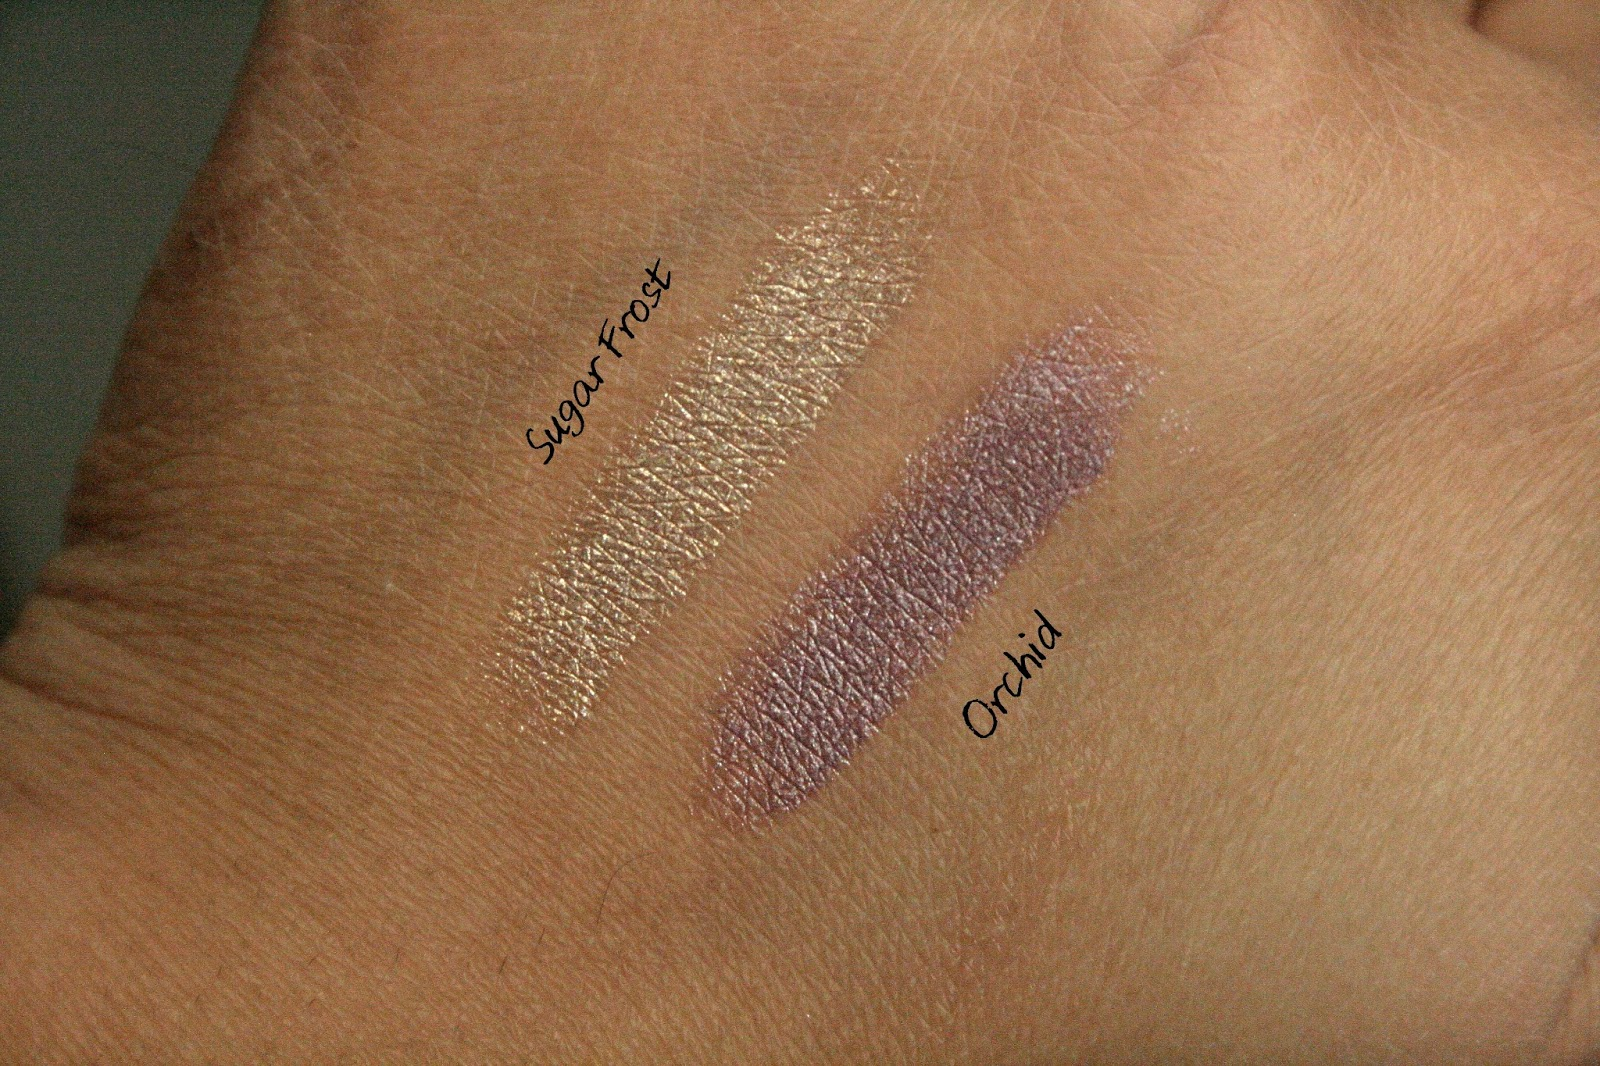 Laura Mercier Caviar Stick Eye Colors in Orchid & Sugar Frost Swatches